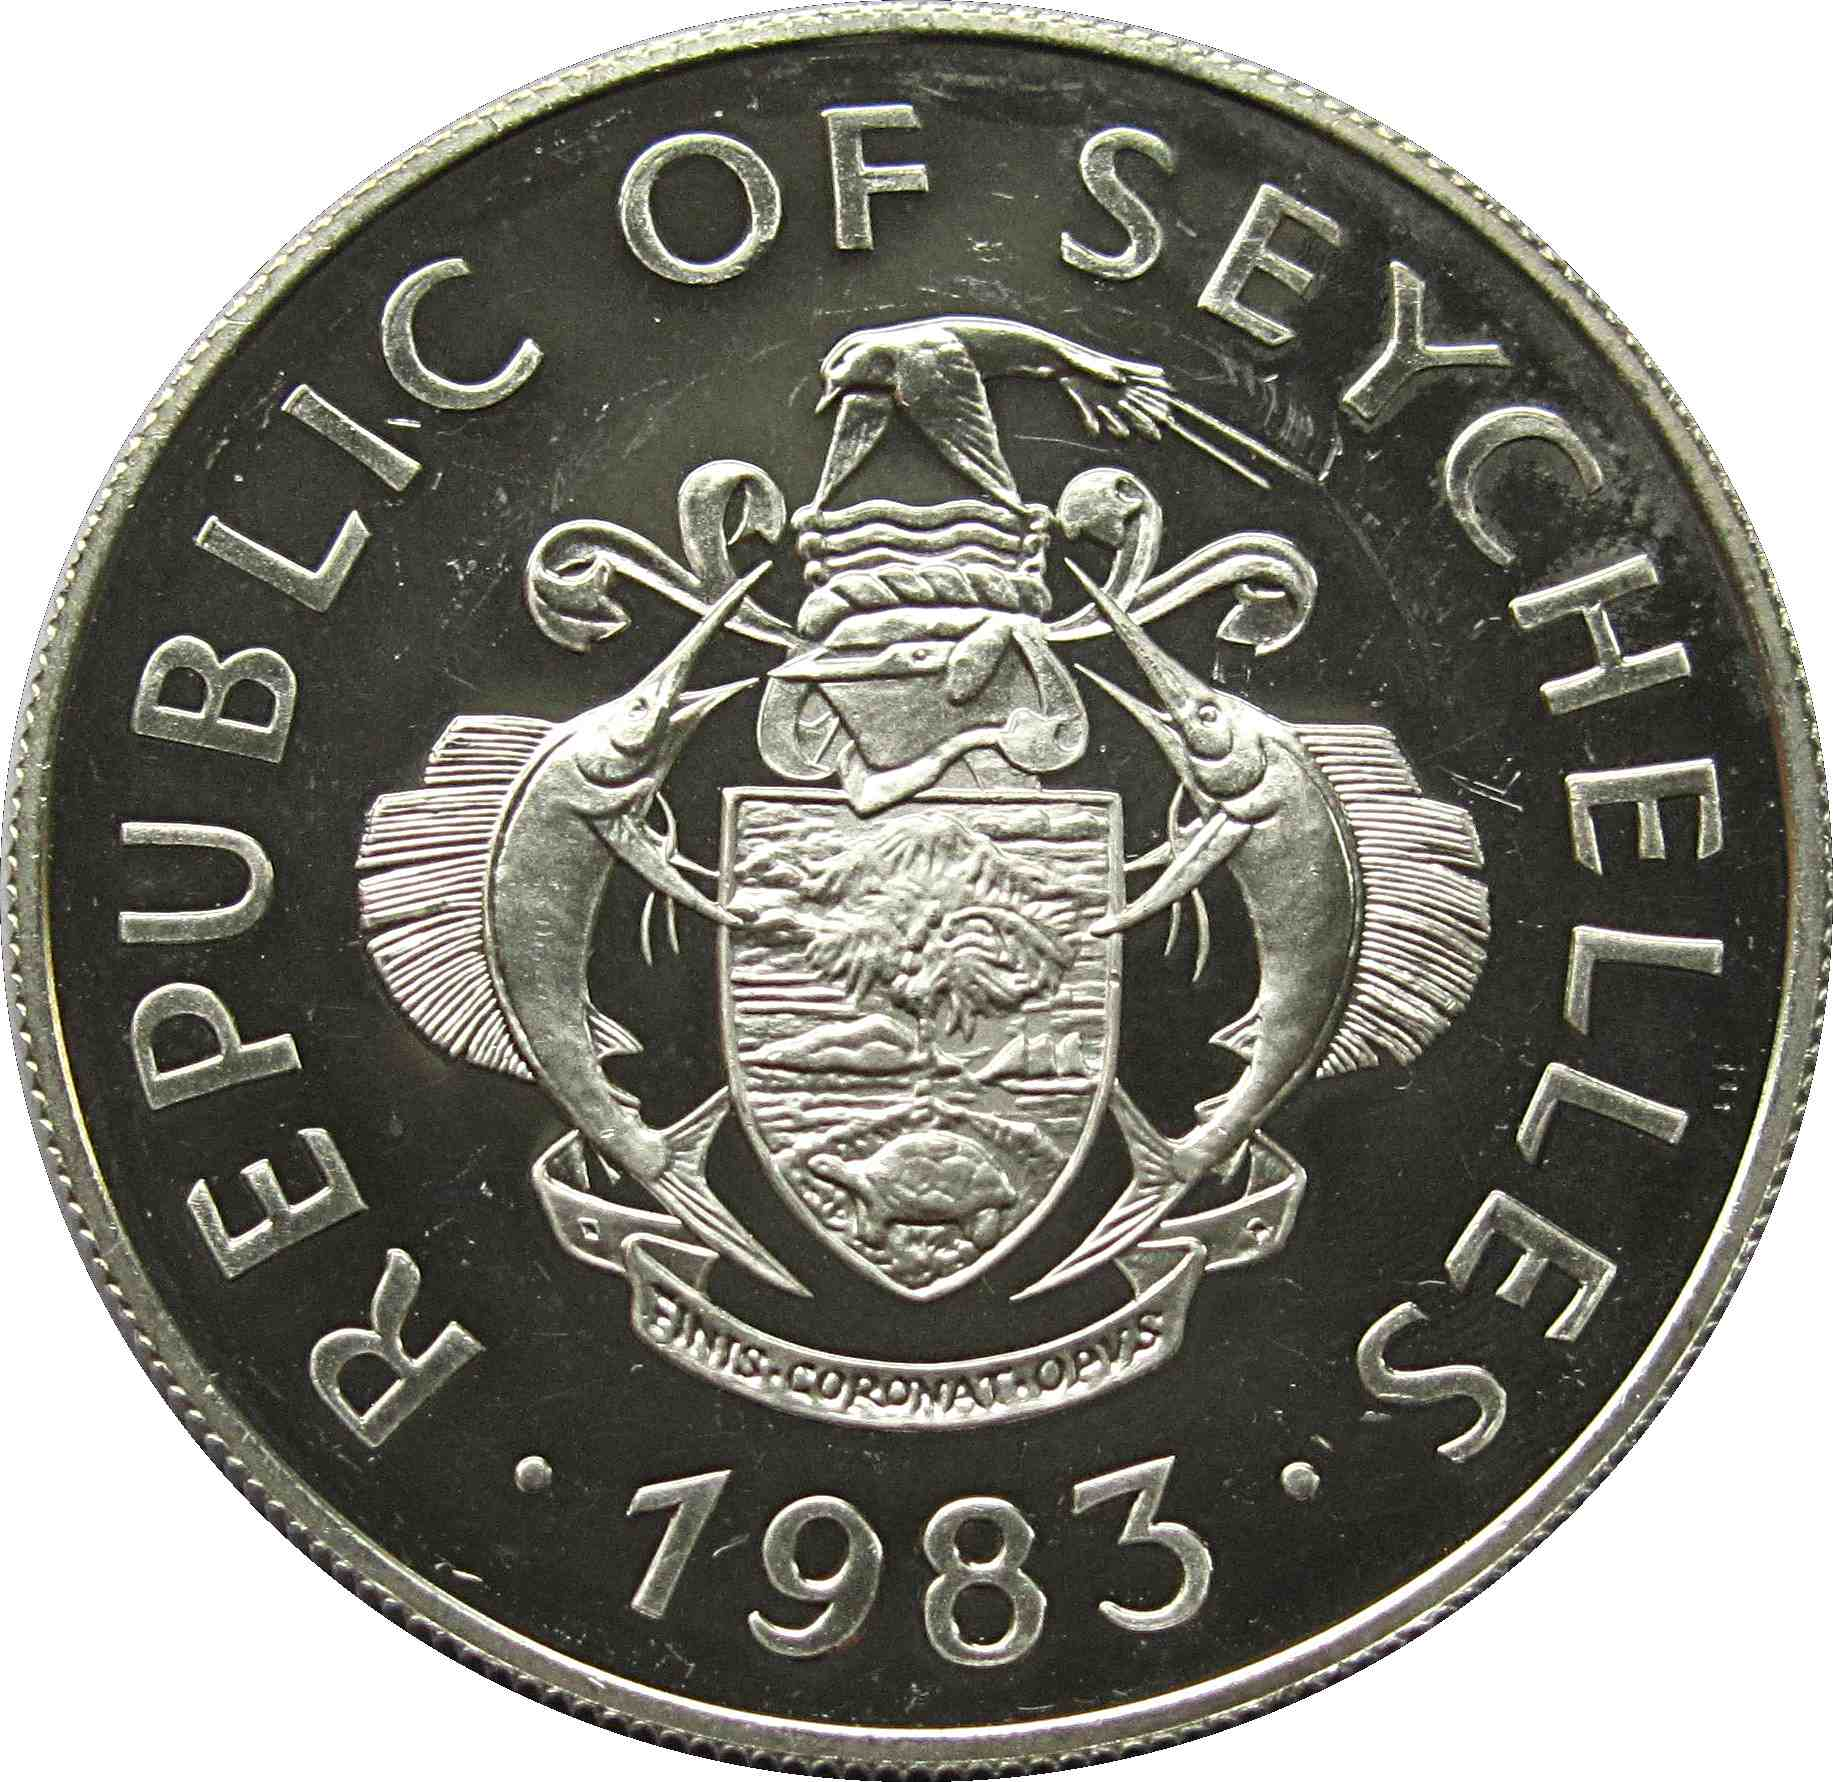 Seychelles 10 Rupees P 28 ND 1983 UNC Low Shipping Central Bank Combine FREE